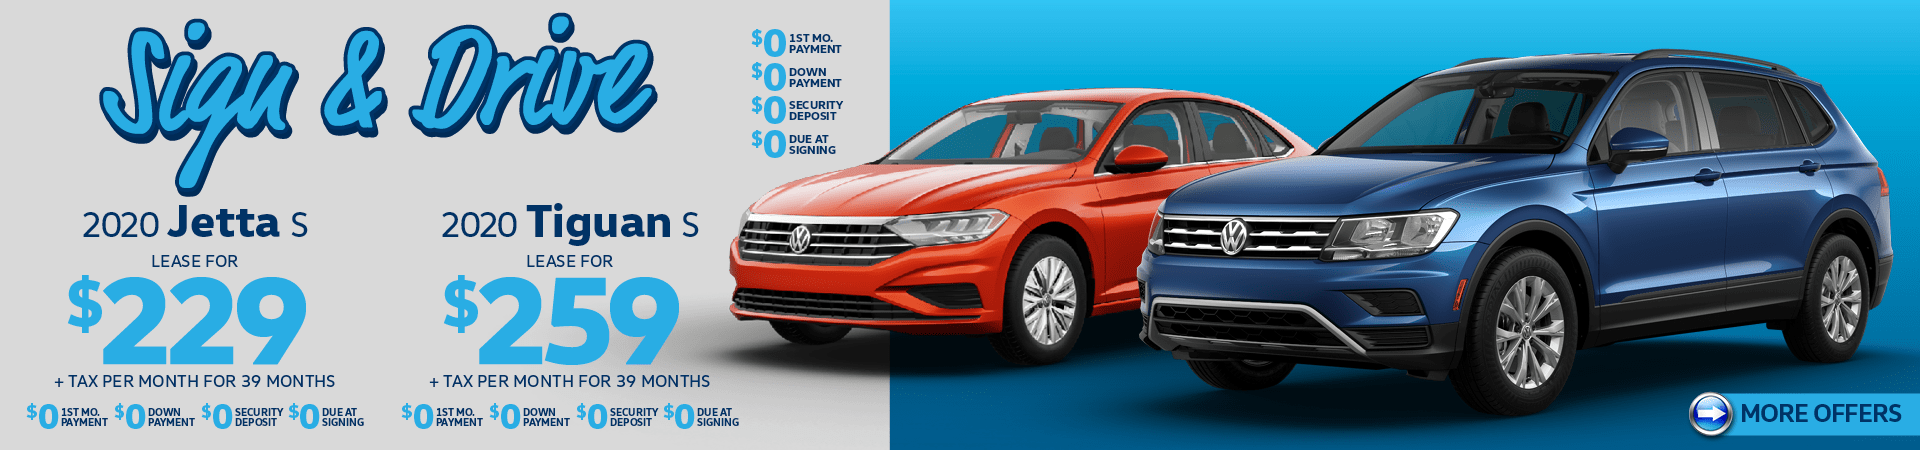 Jetta and Tiguan Specials